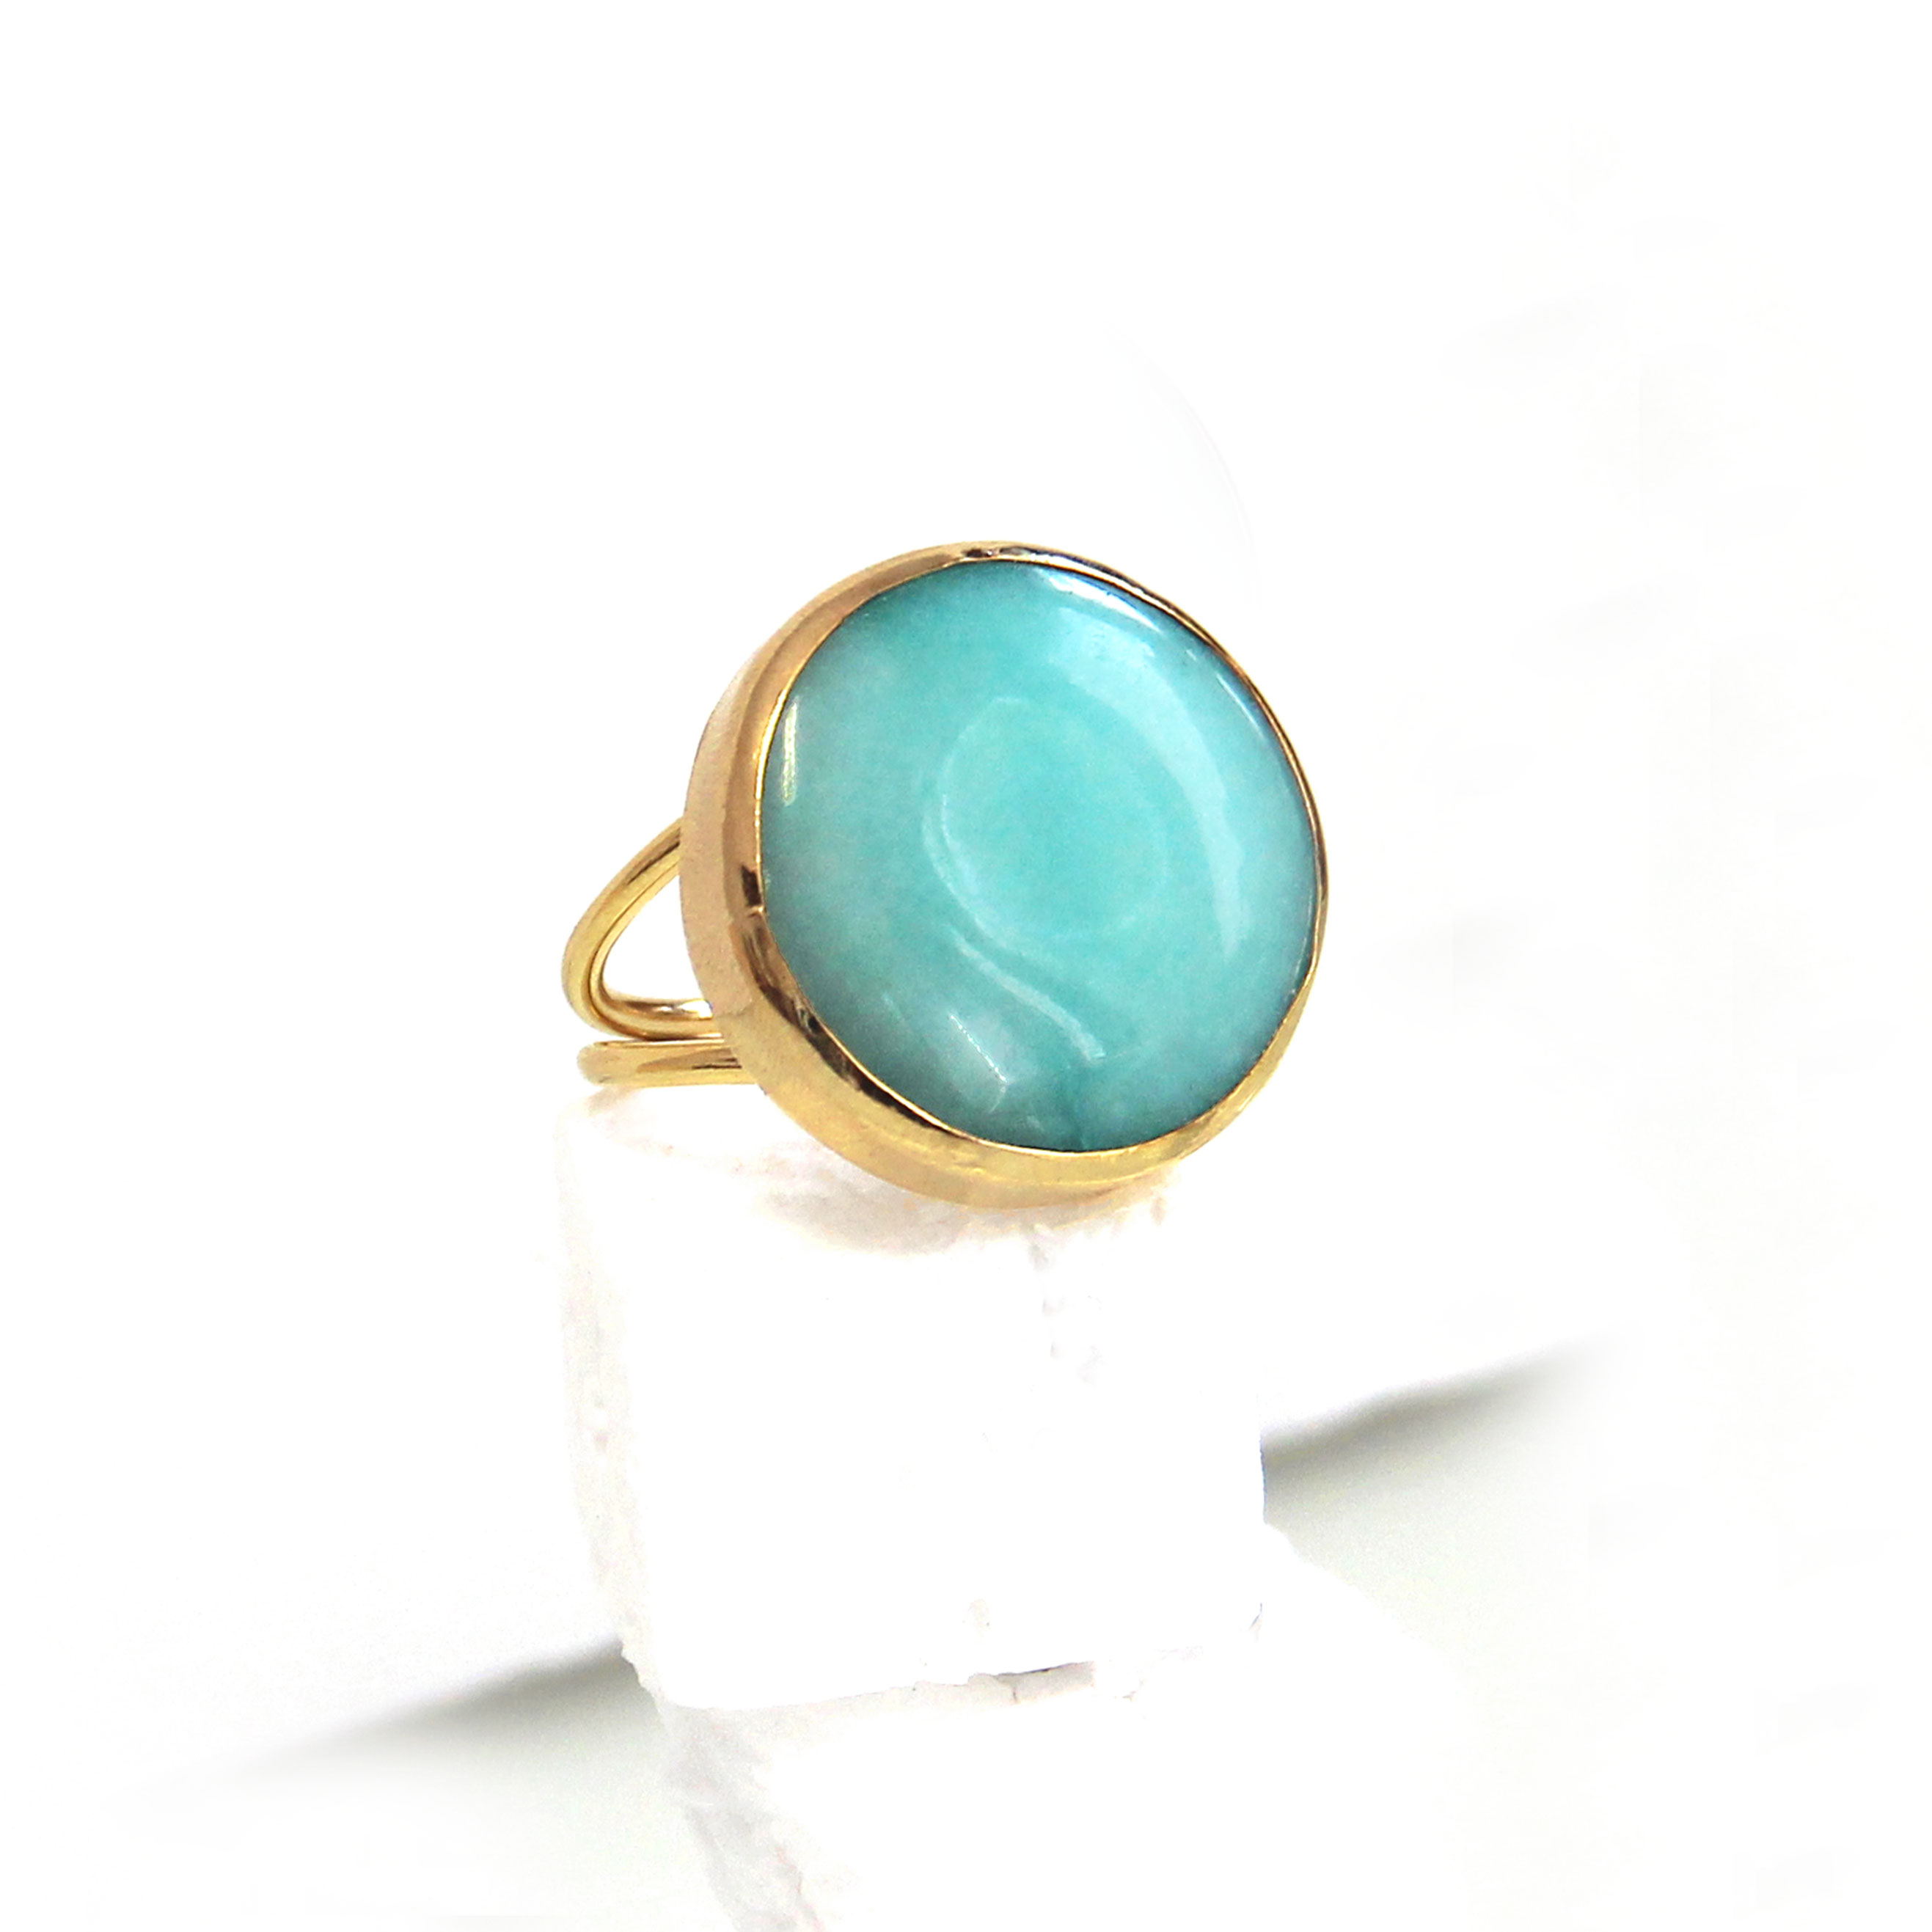 rings home teal on diamond gold set jewellers shop pegg jewelry london chester img cluster